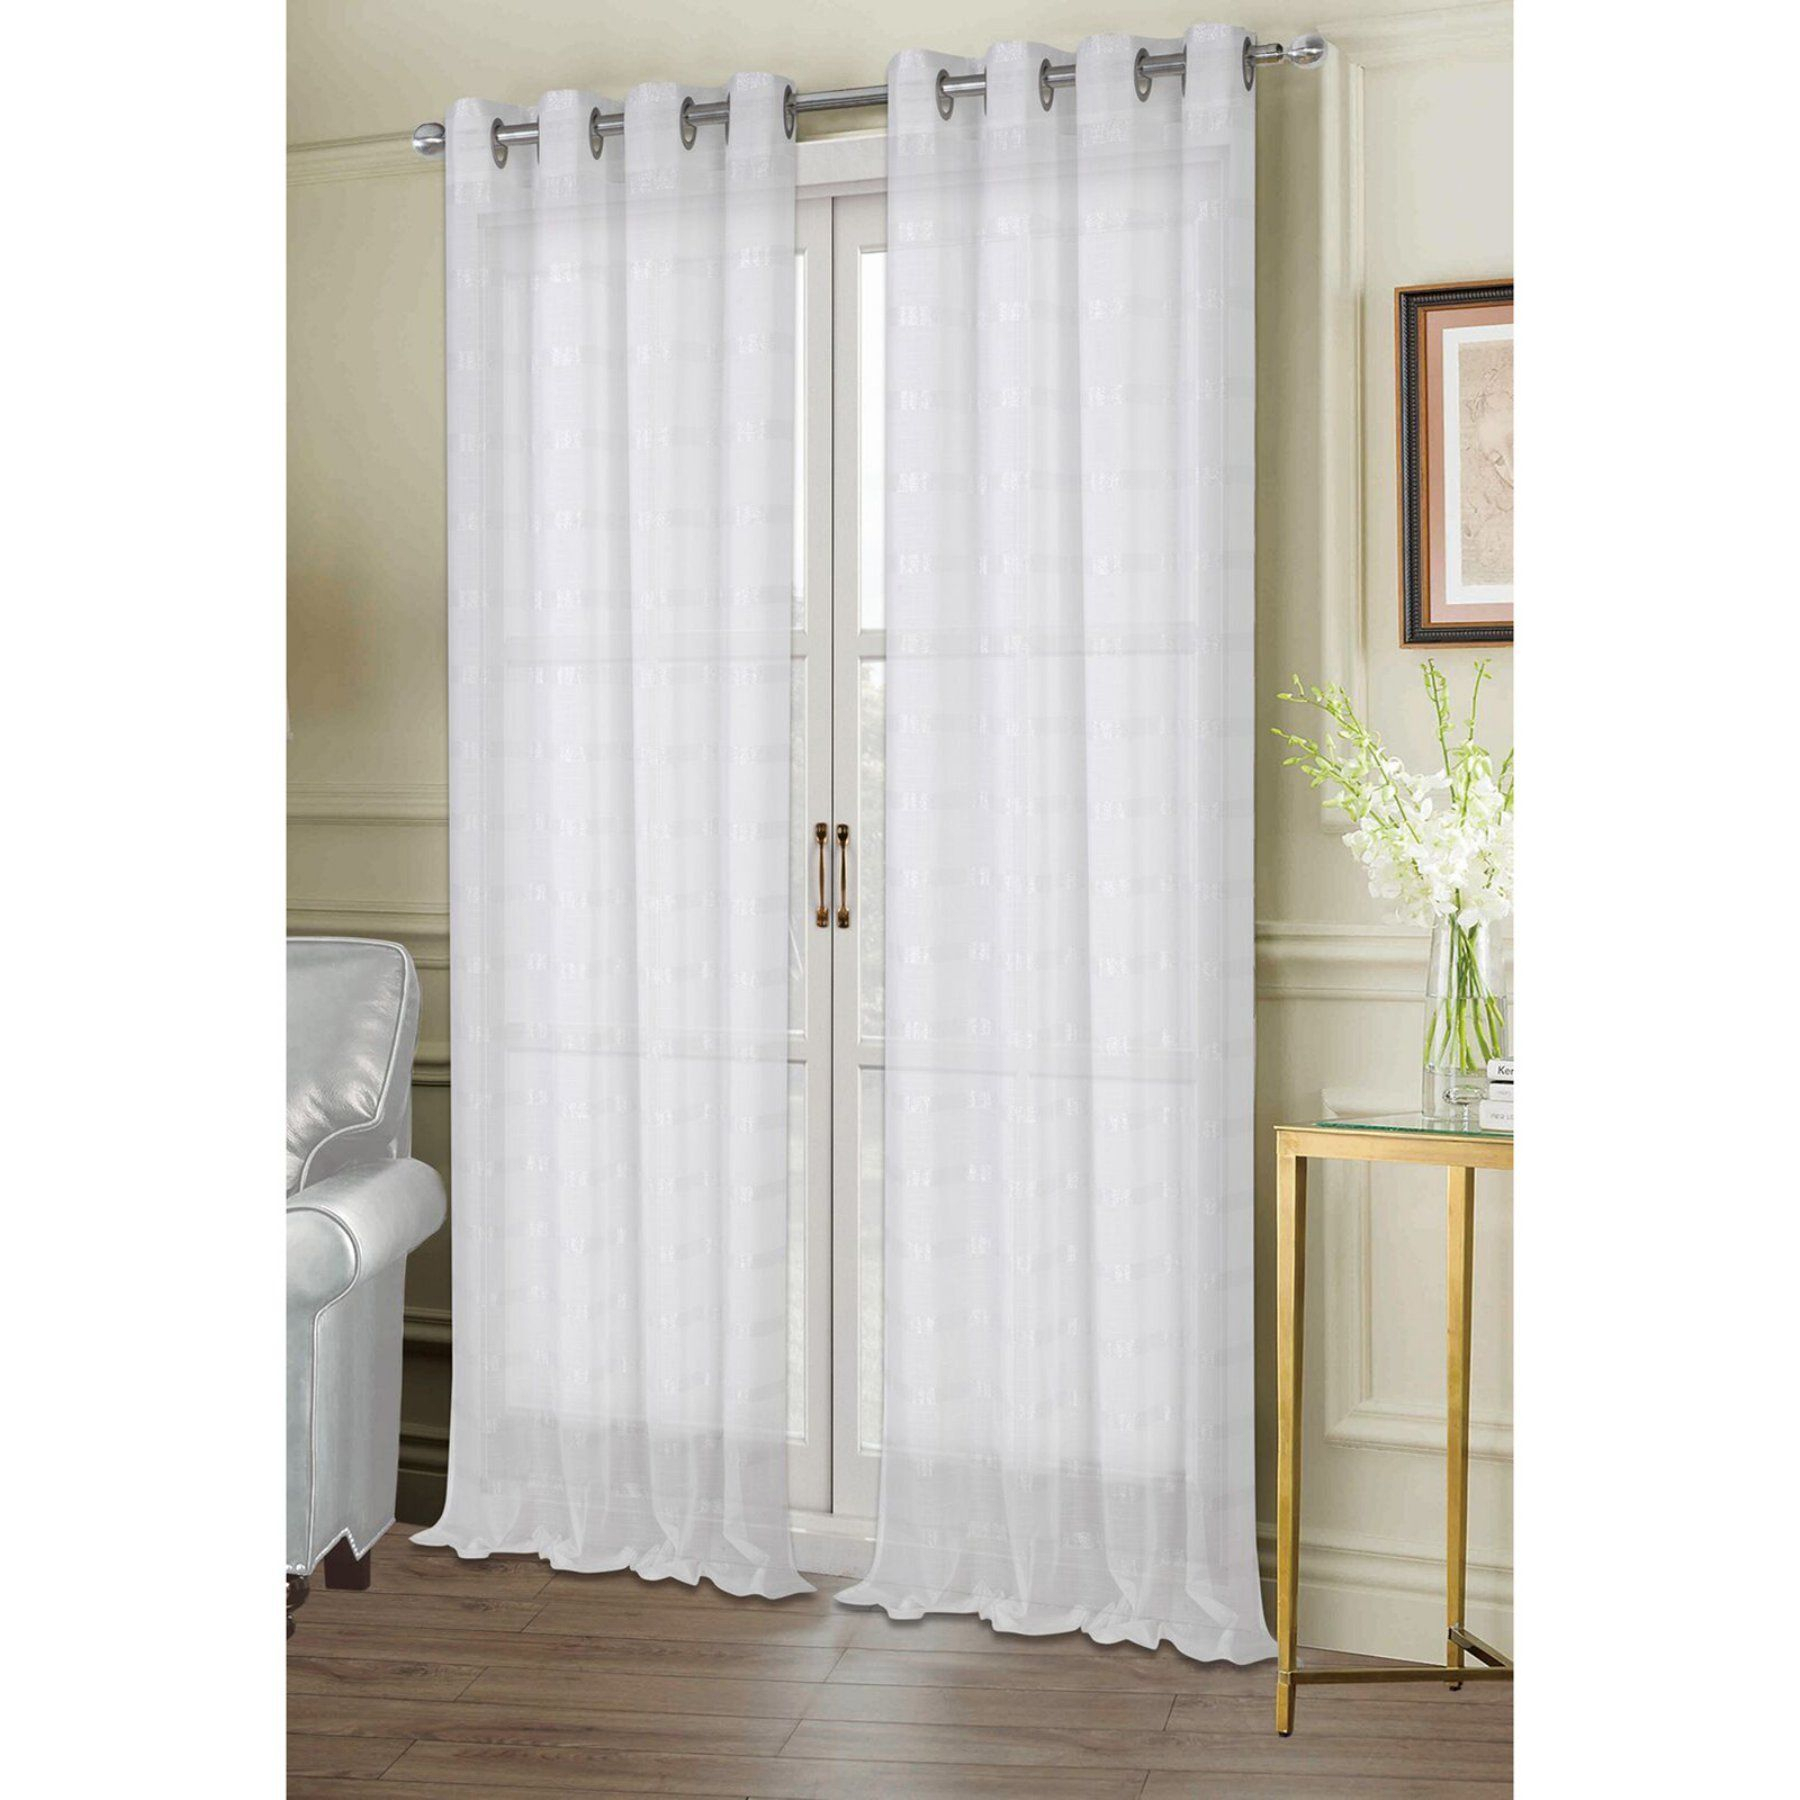 Dainty Home Metallica Grommet Sheer Panel Pair – White Intended For Signature White Double Layer Sheer Curtain Panels (View 2 of 30)